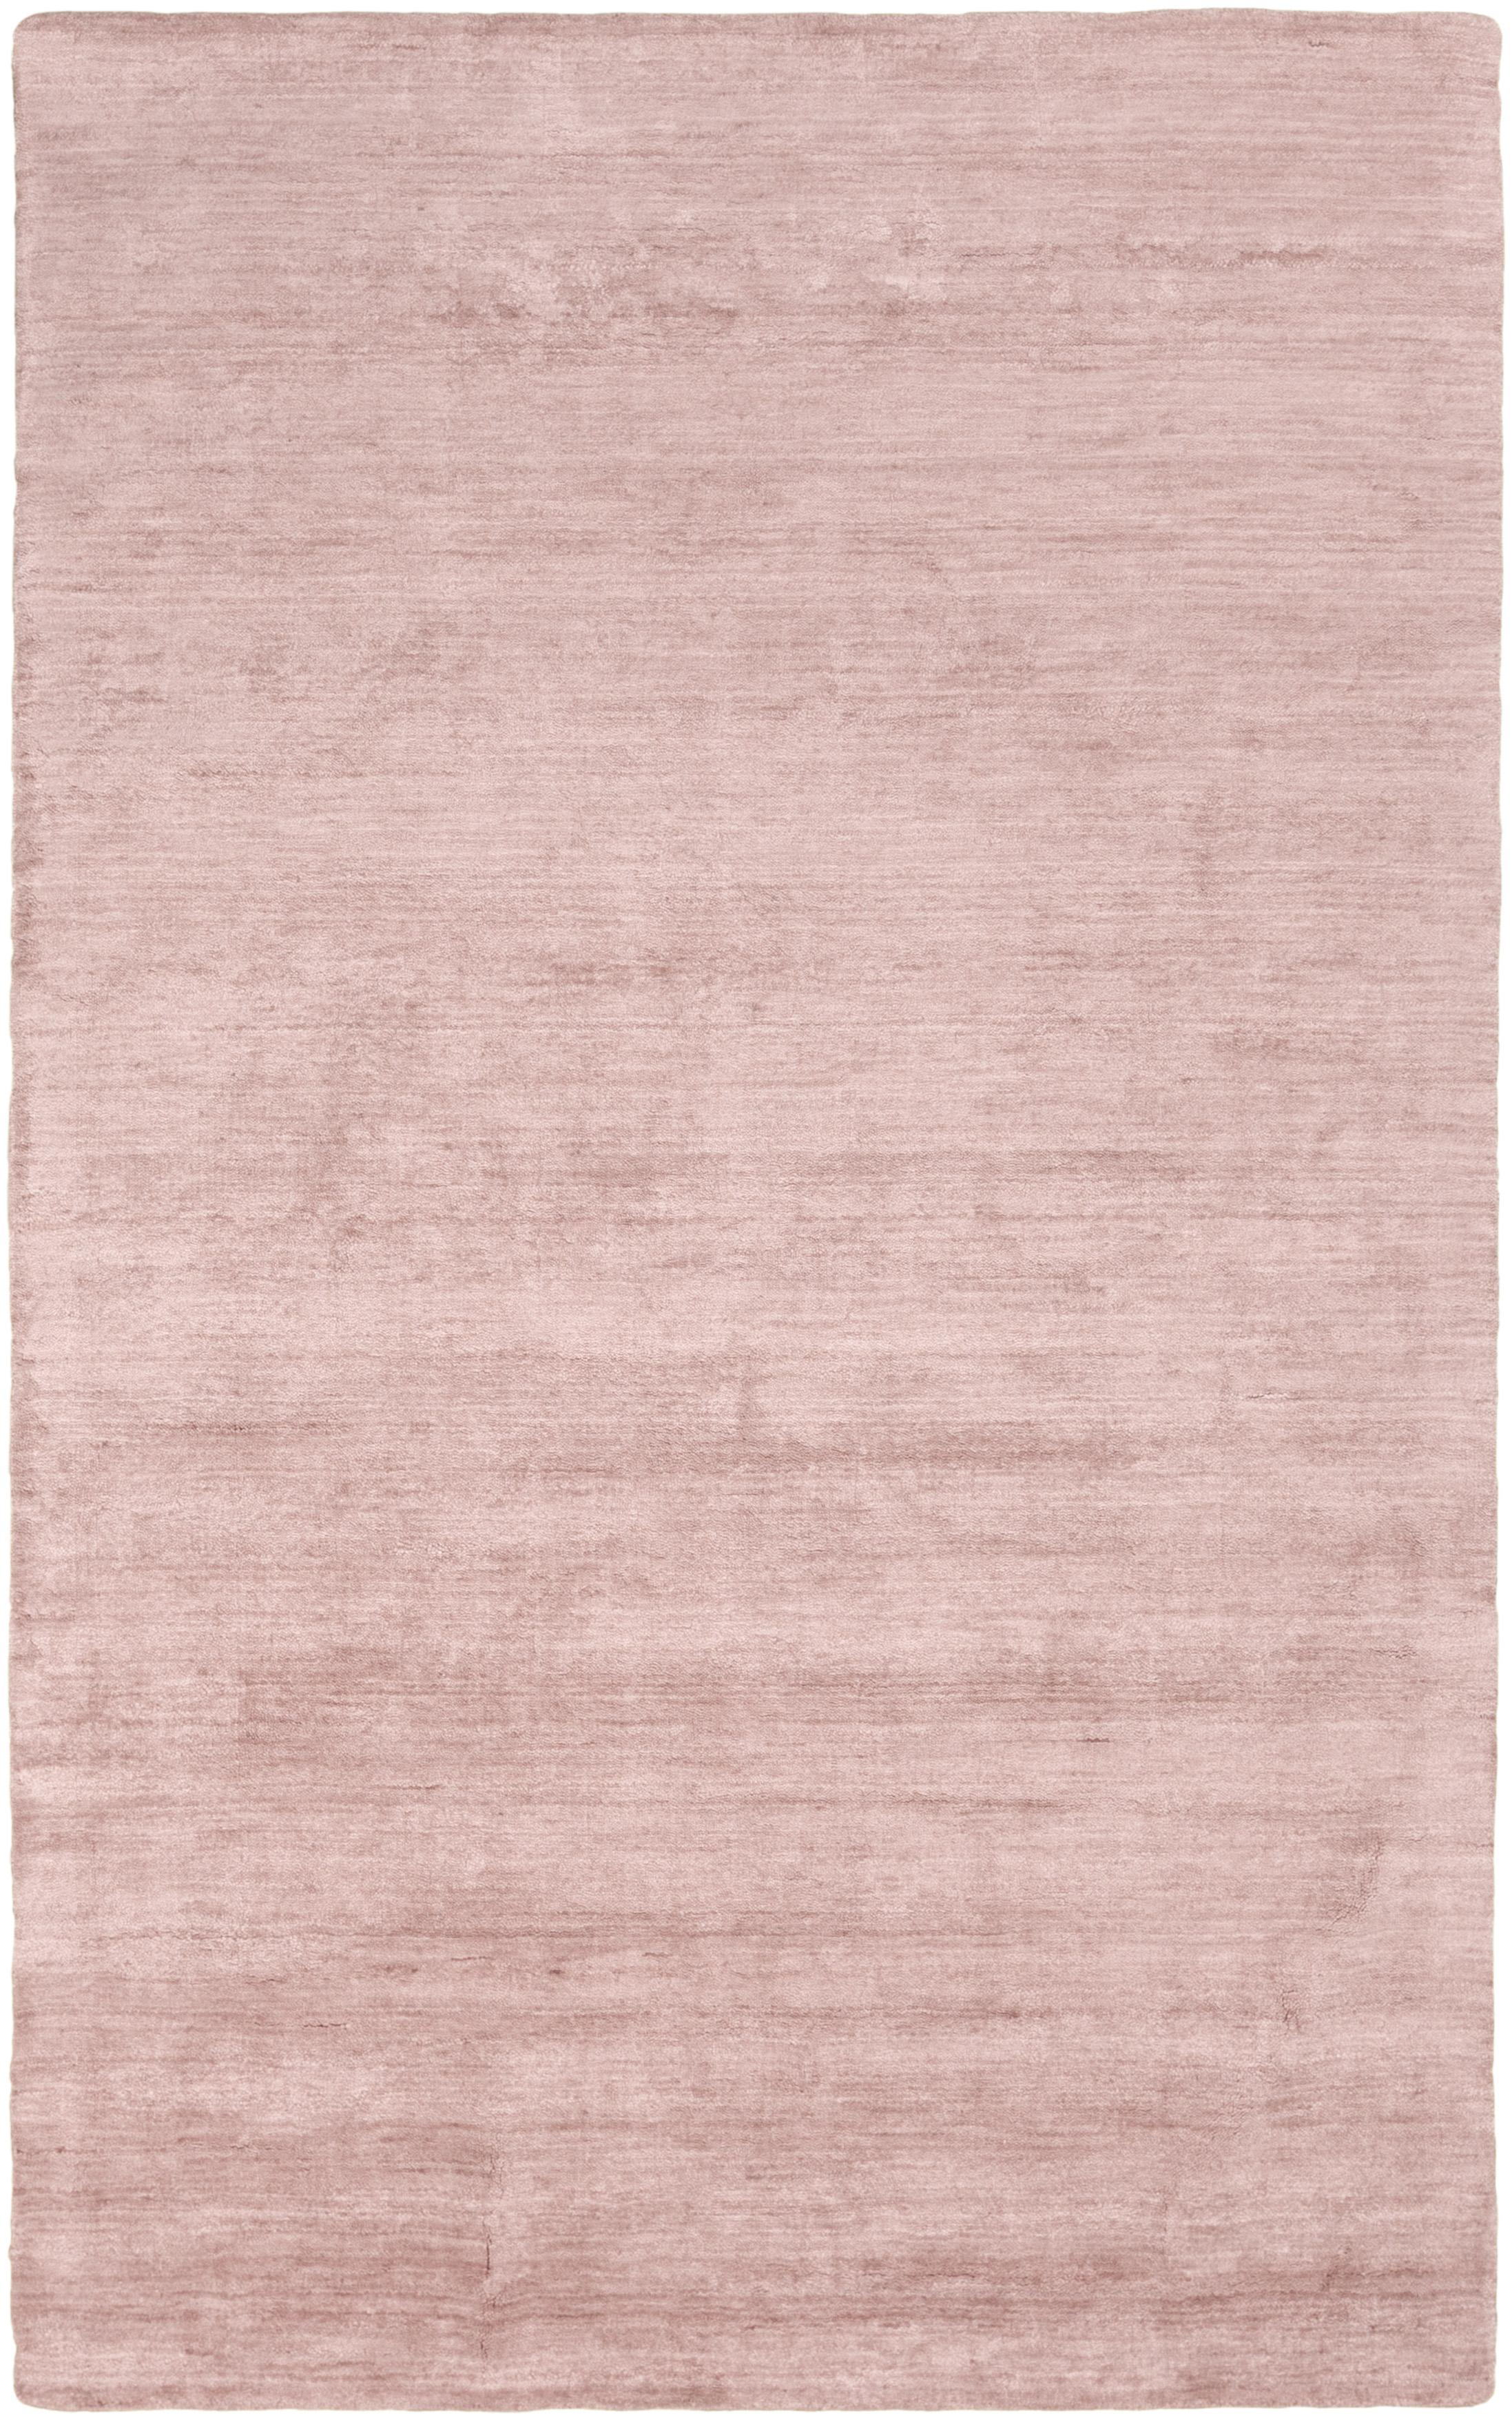 Surya Rugs Pure 8' x 10' - Item Number: PUR3002-810